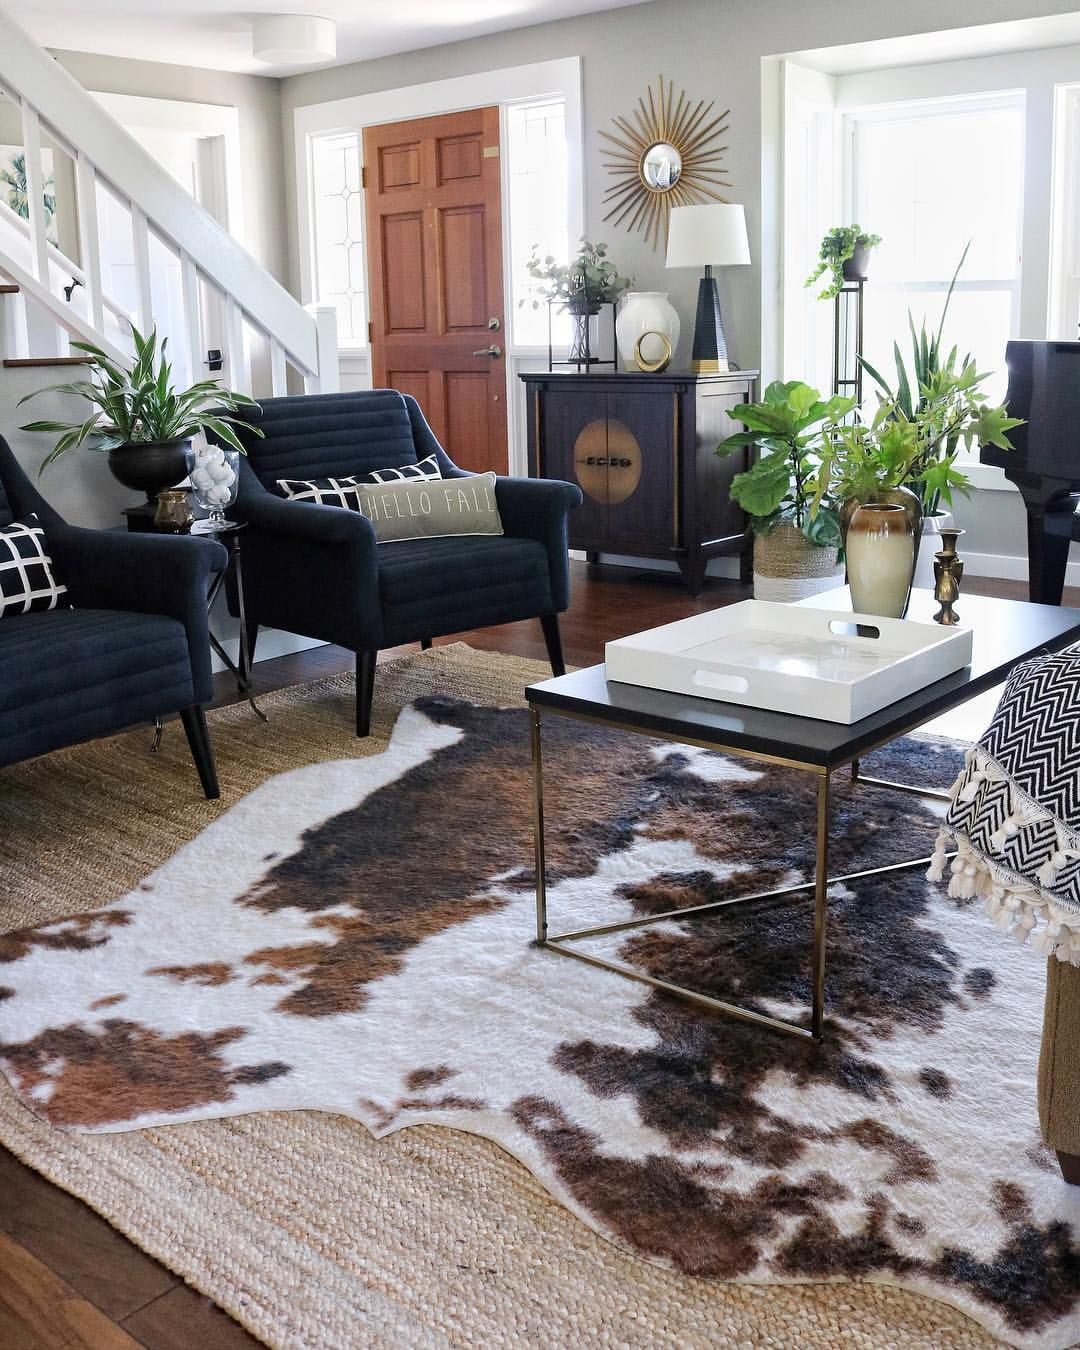 Fall Living Room With Navy Blue Chairs Layered Jute Faux Cowhide Rug Target Coffee Ta Rugs In Living Room Farm House Living Room Layered Rugs Living Room